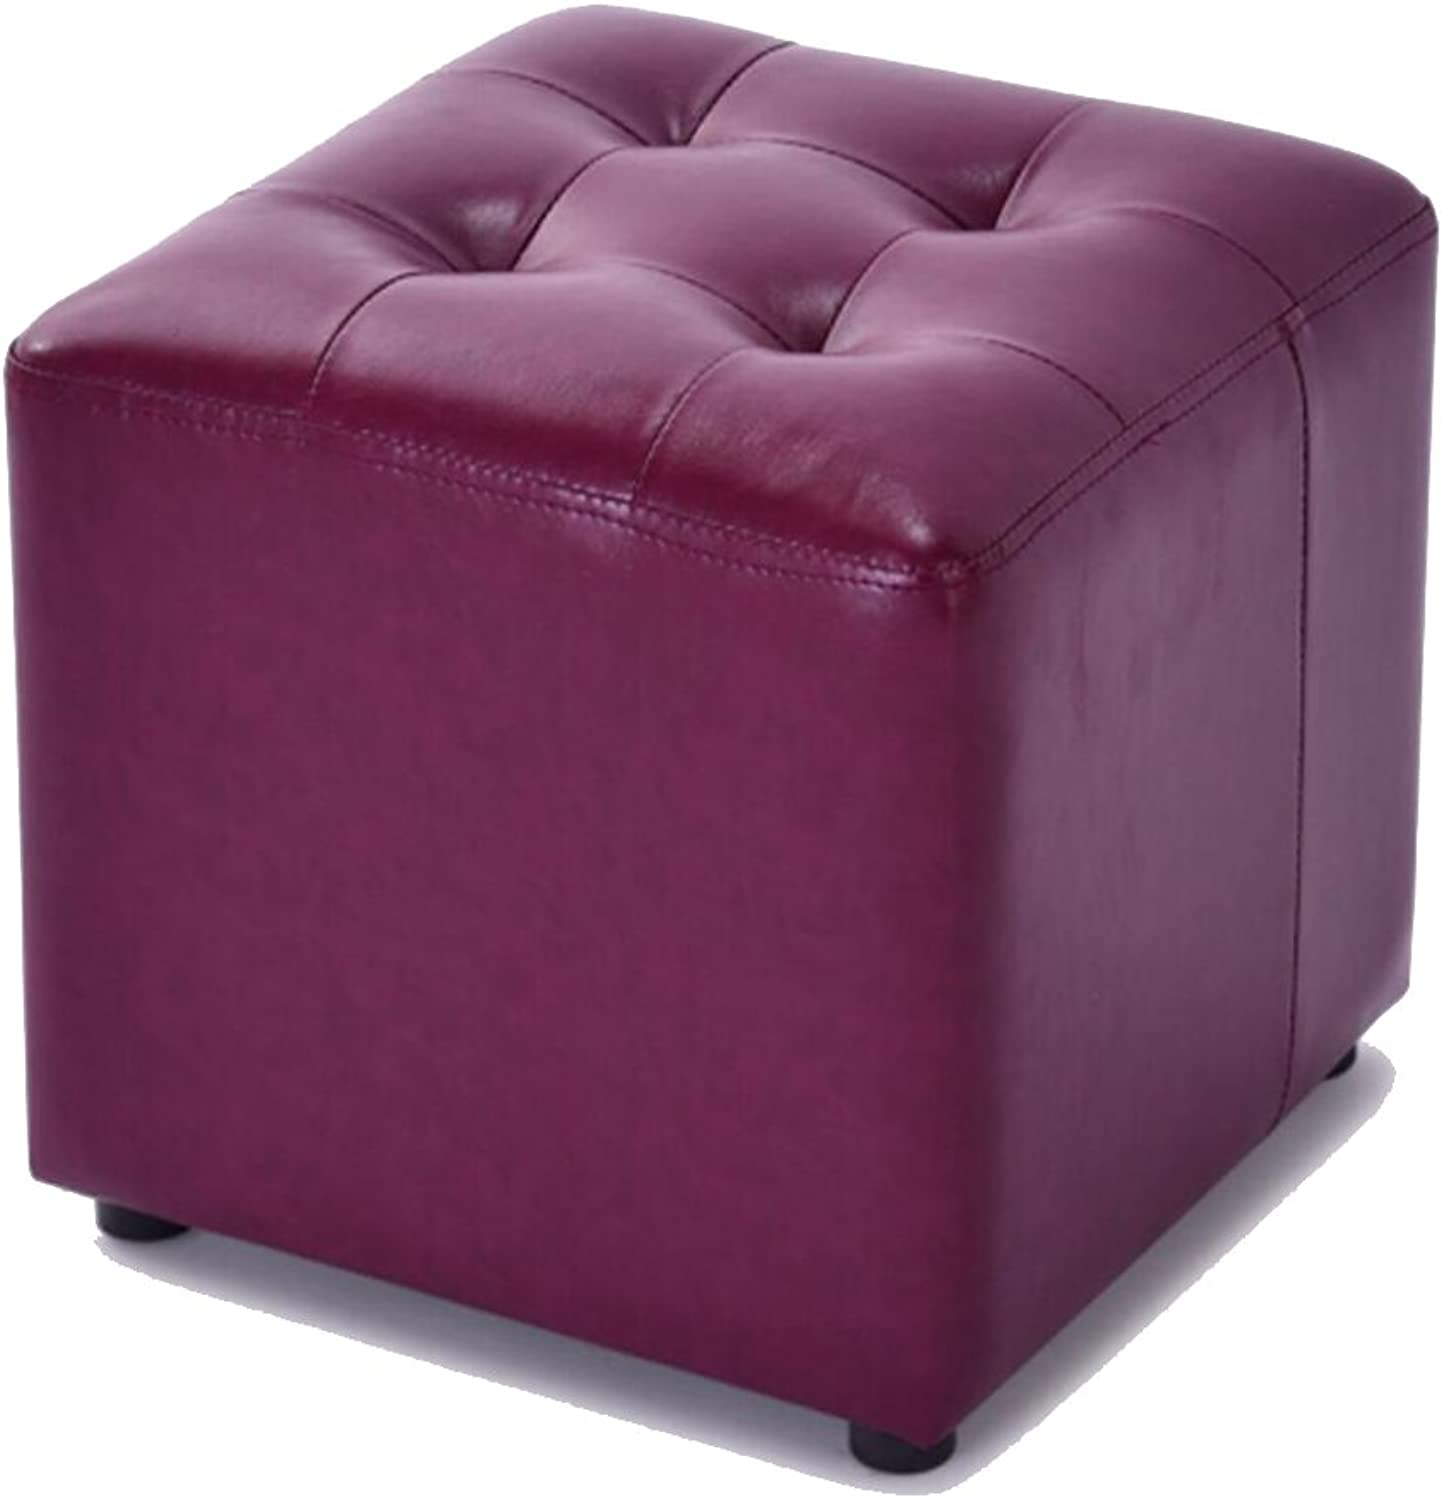 Solid color Sofa Stool, Fashion Creative Makeup Stool, Solid Wood Square Stool, shoes Bench (36  36  33cm) (color   C)